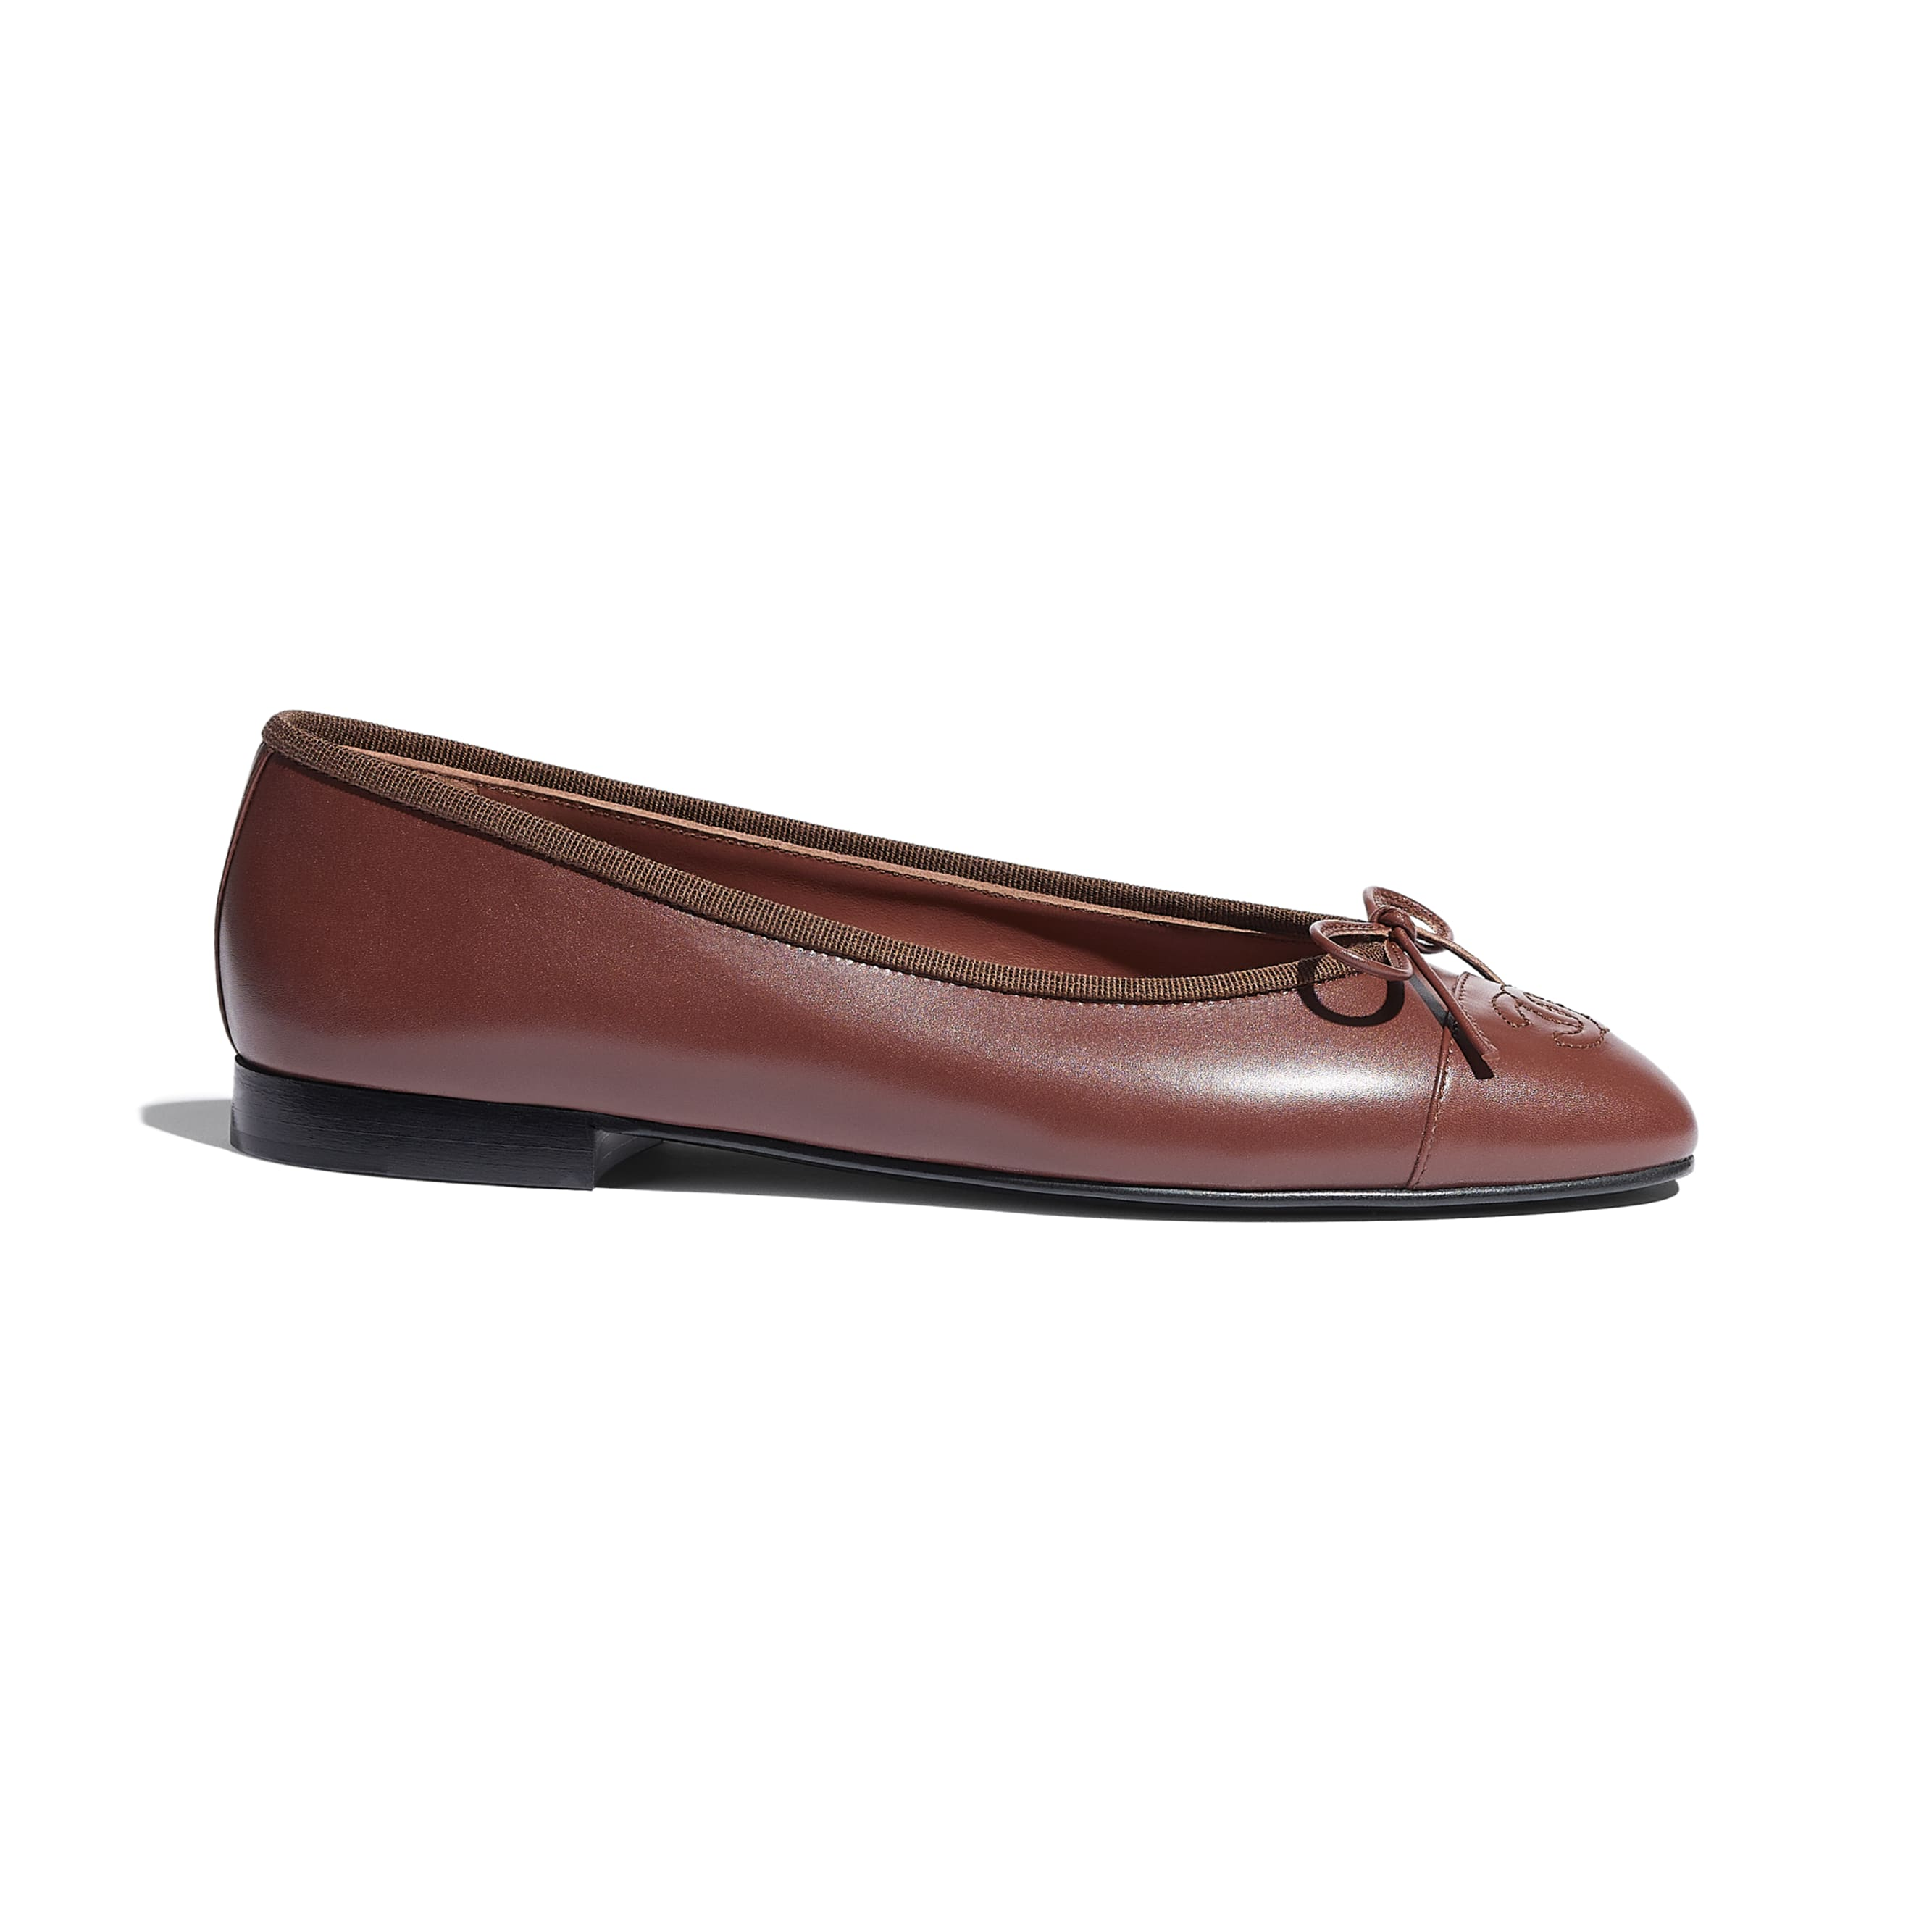 Flats - Brown - Calfskin - CHANEL - Default view - see standard sized version